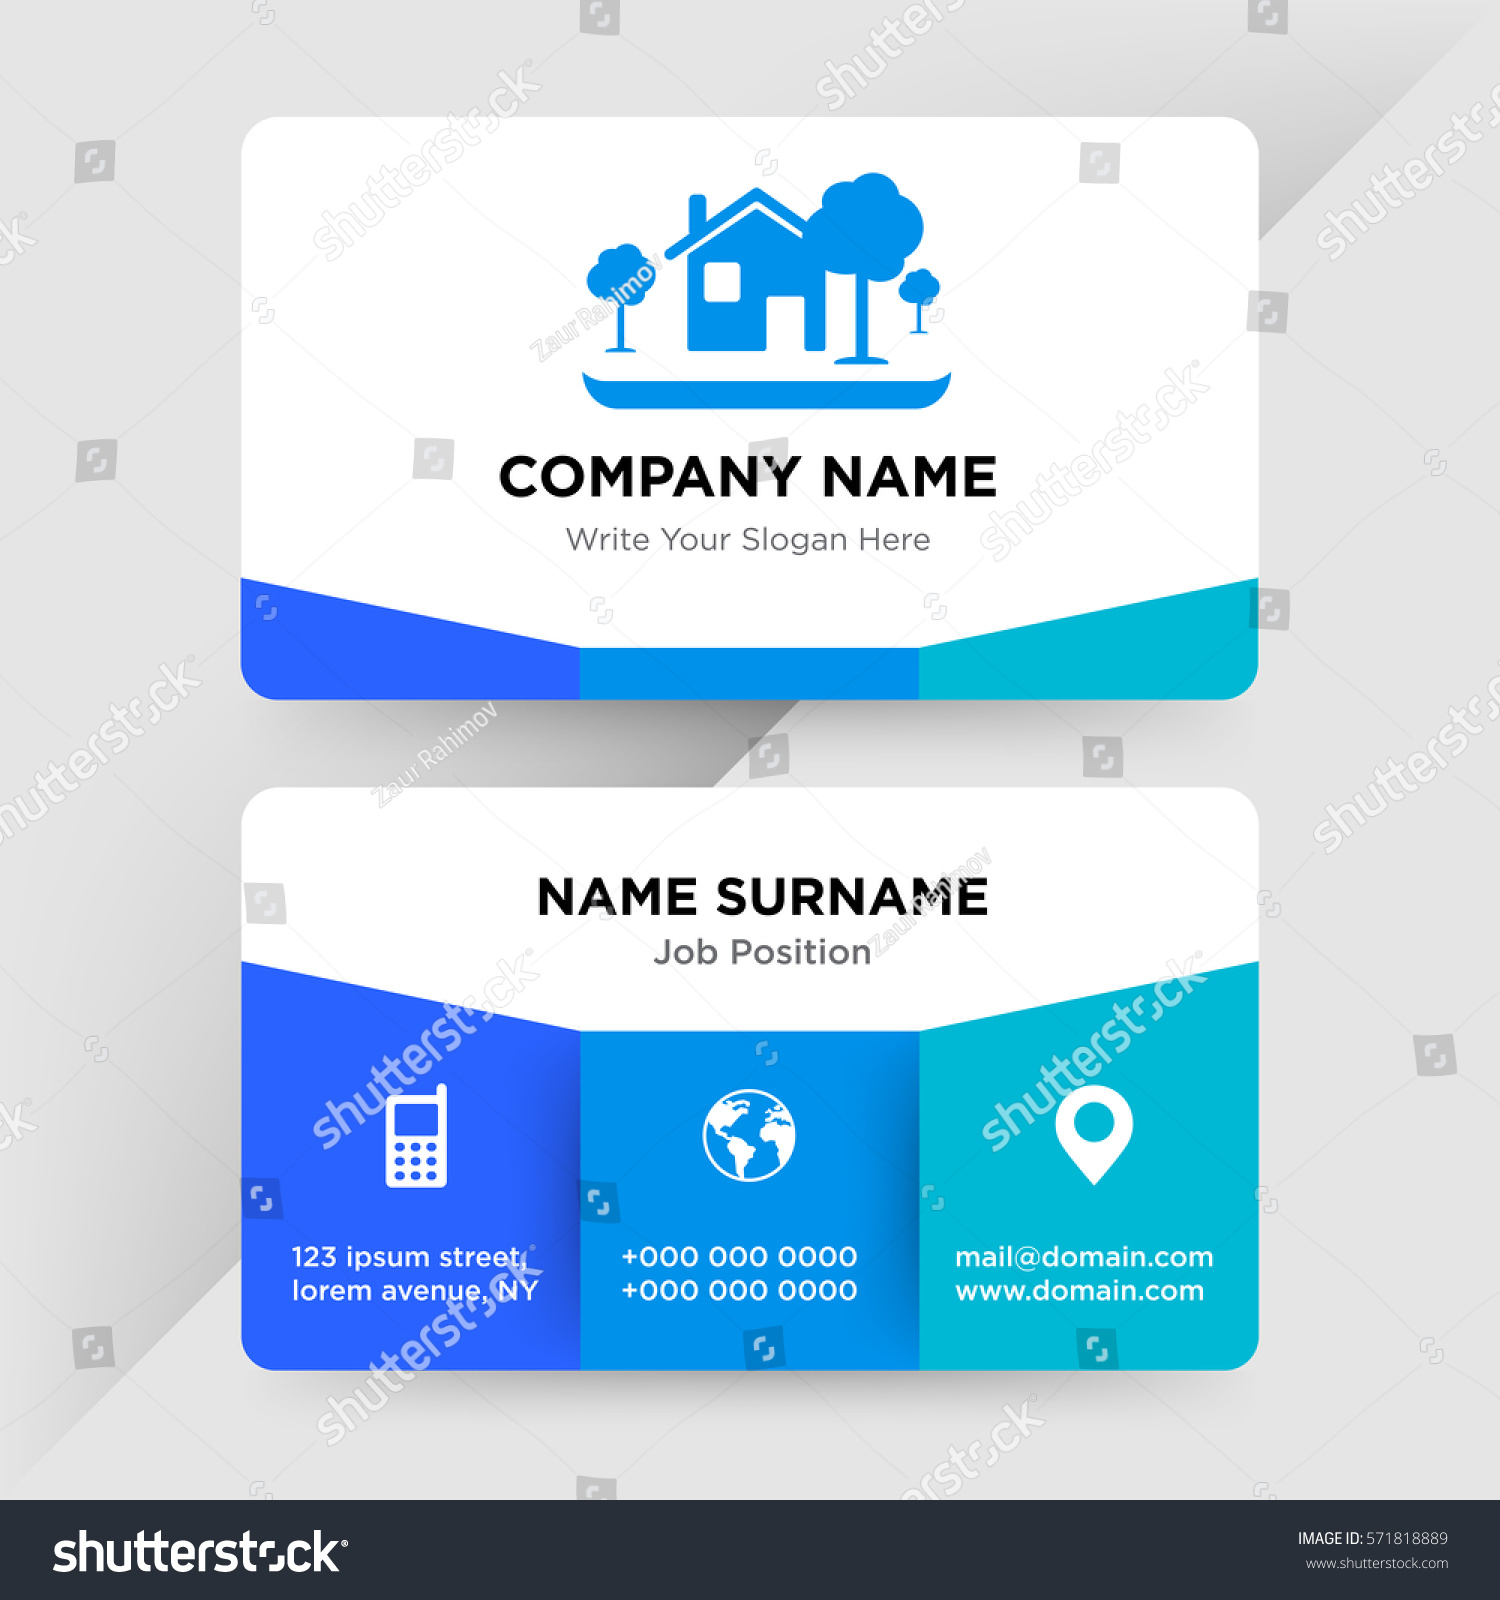 Template Business Card Architecture Construction Services Stock Vector 571818889